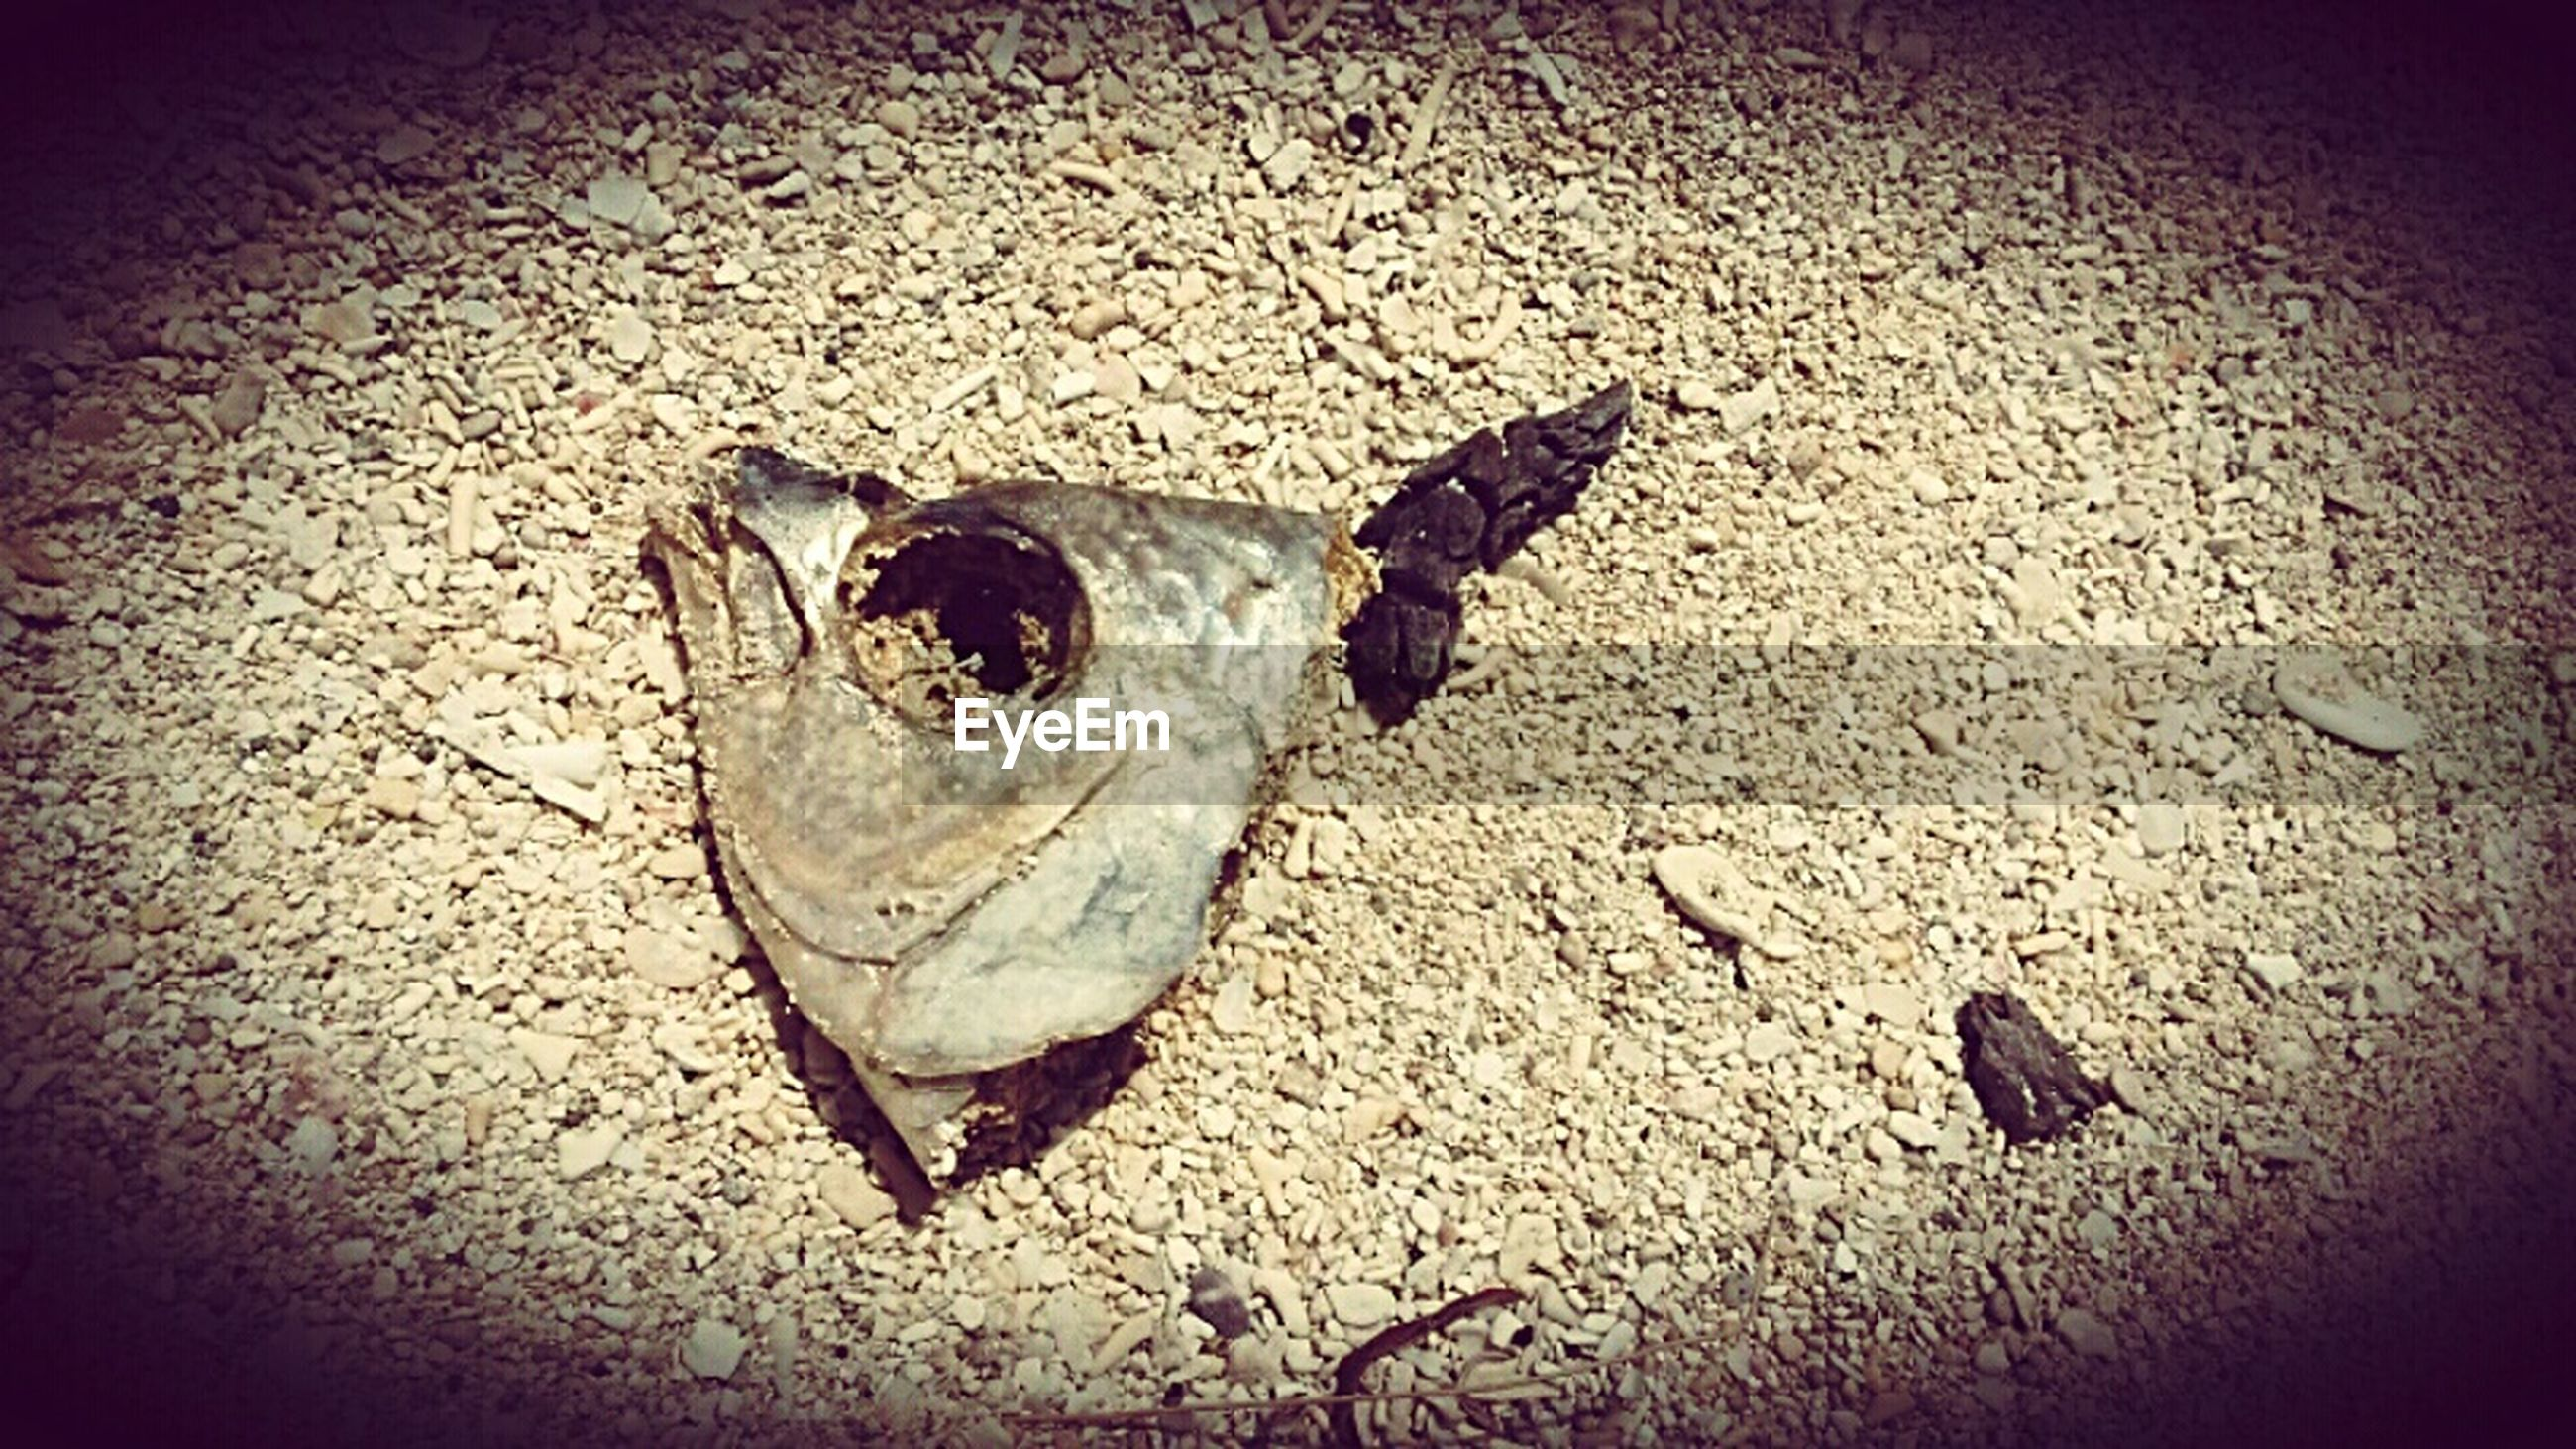 animal themes, one animal, high angle view, wildlife, animals in the wild, insect, shadow, sand, close-up, vignette, ground, street, outdoors, auto post production filter, sunlight, day, nature, no people, textured, dead animal